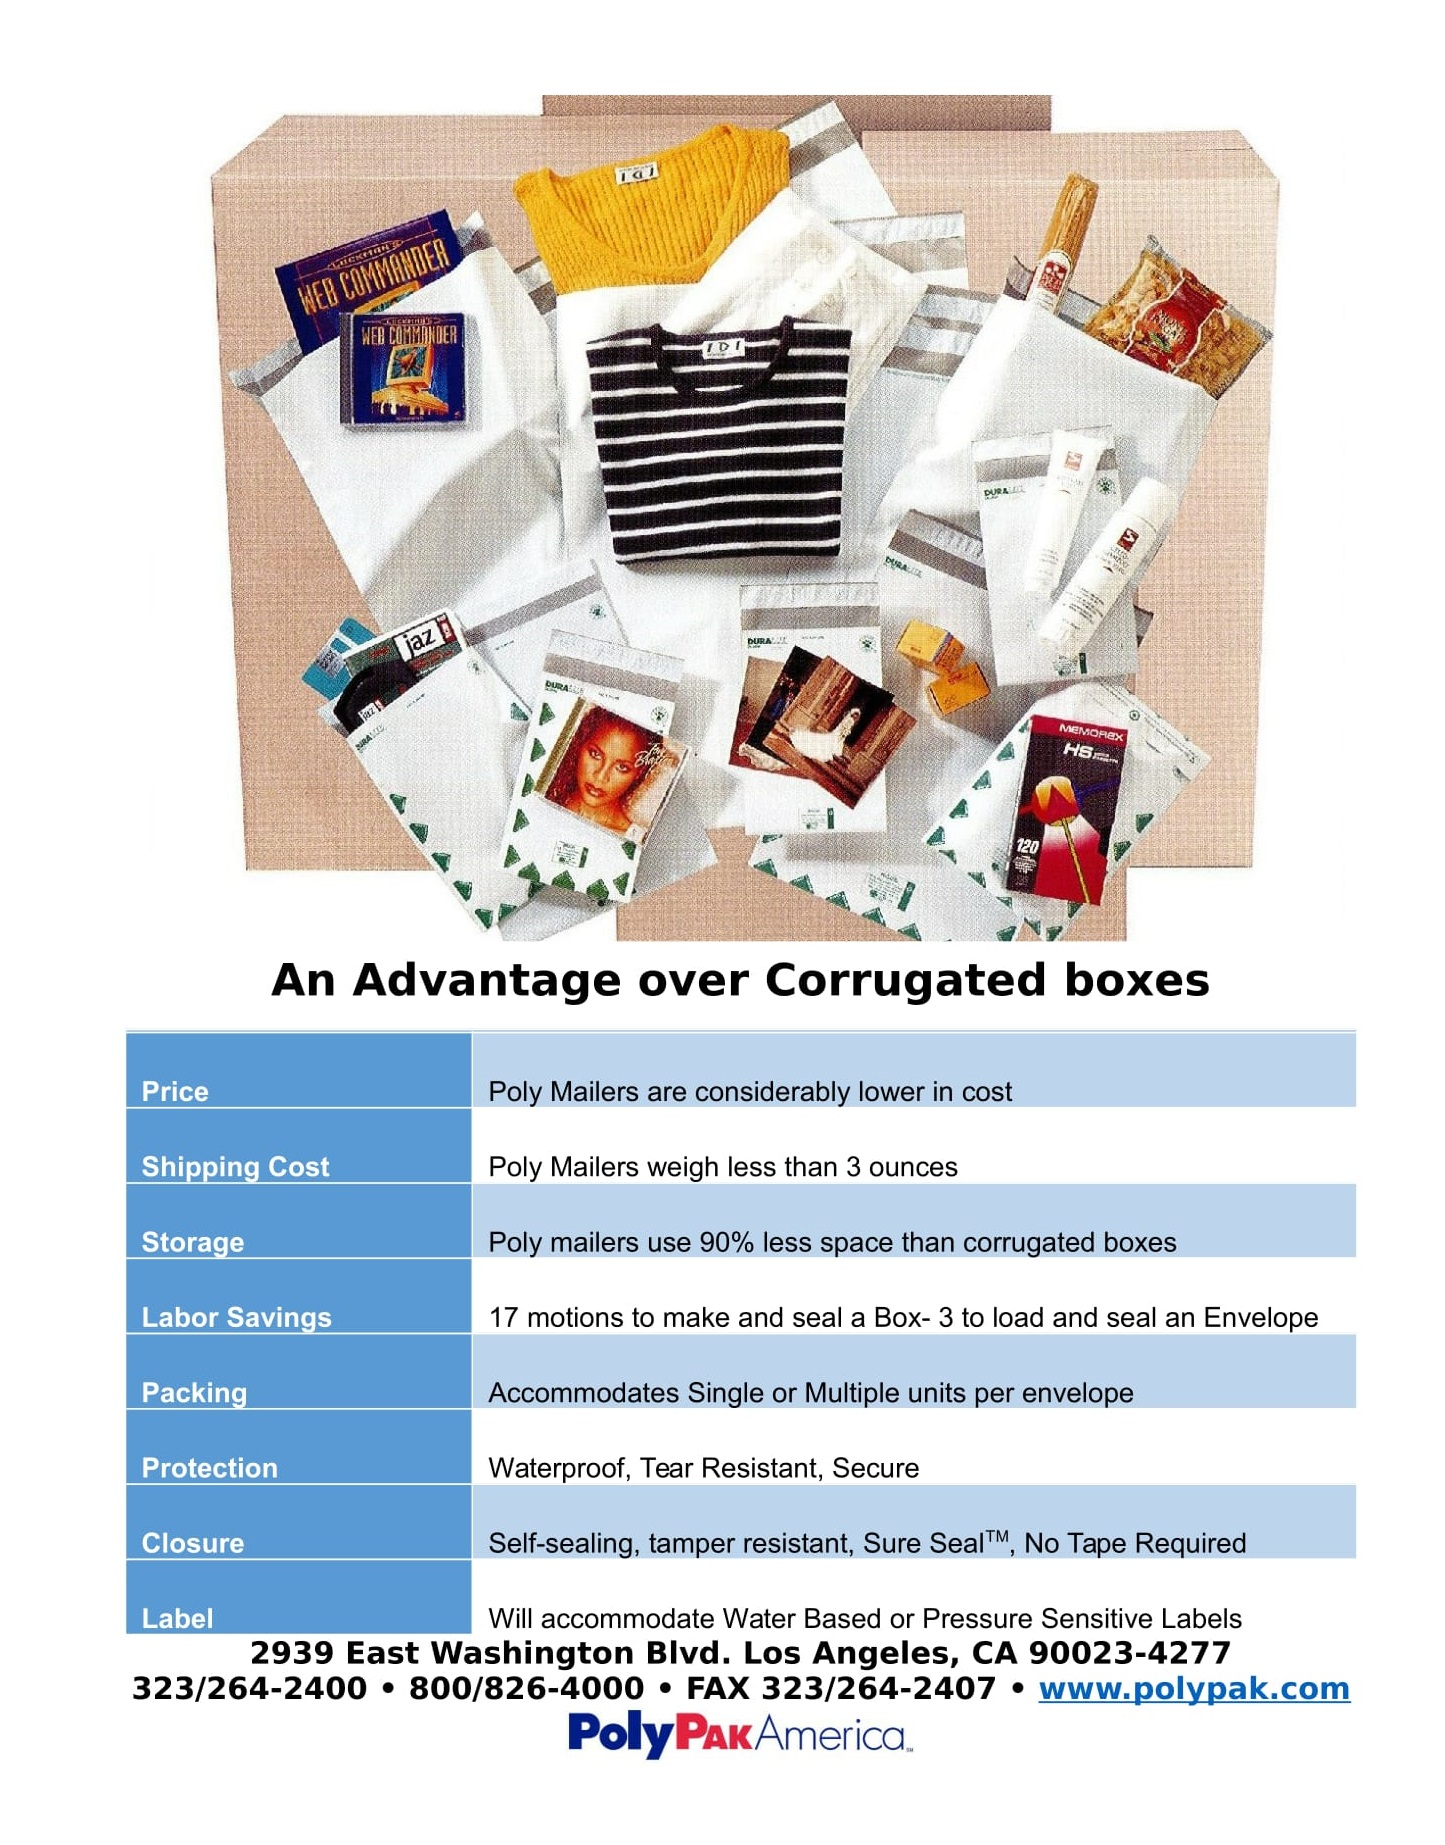 An Advantage over Corrugated boxesfor blog